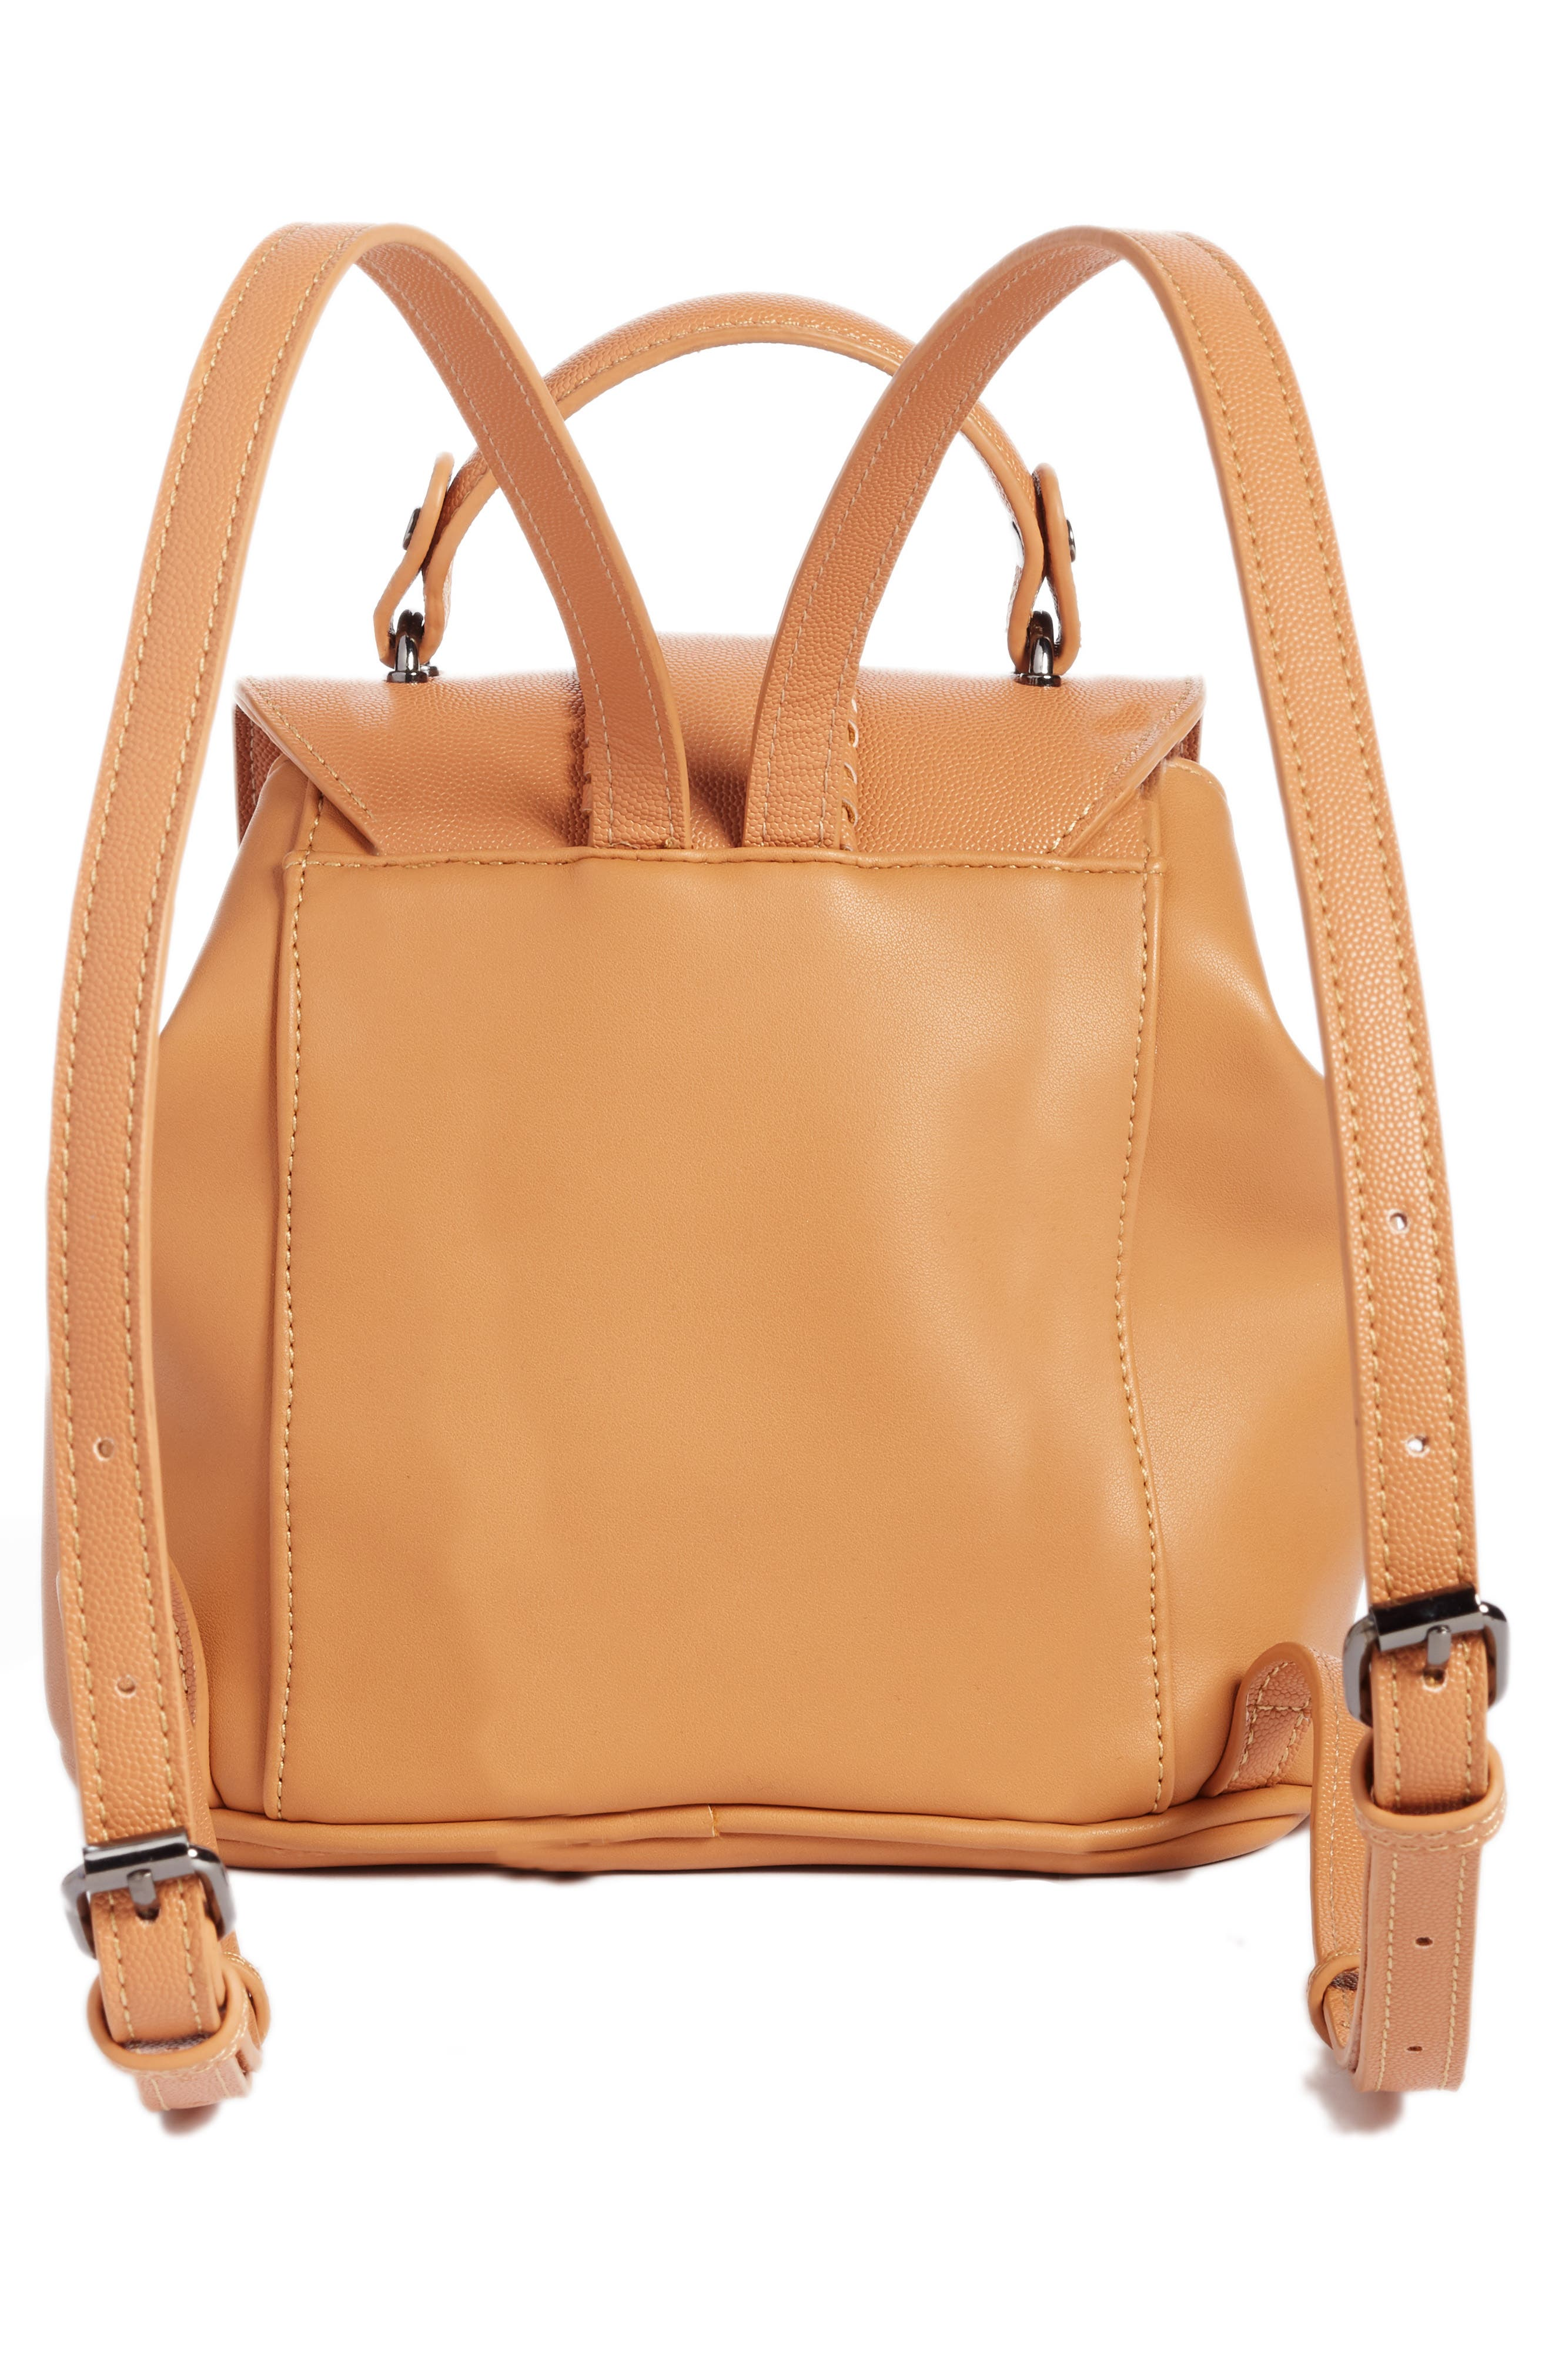 Whipstitch Faux Leather Backpack,                             Alternate thumbnail 3, color,                             240